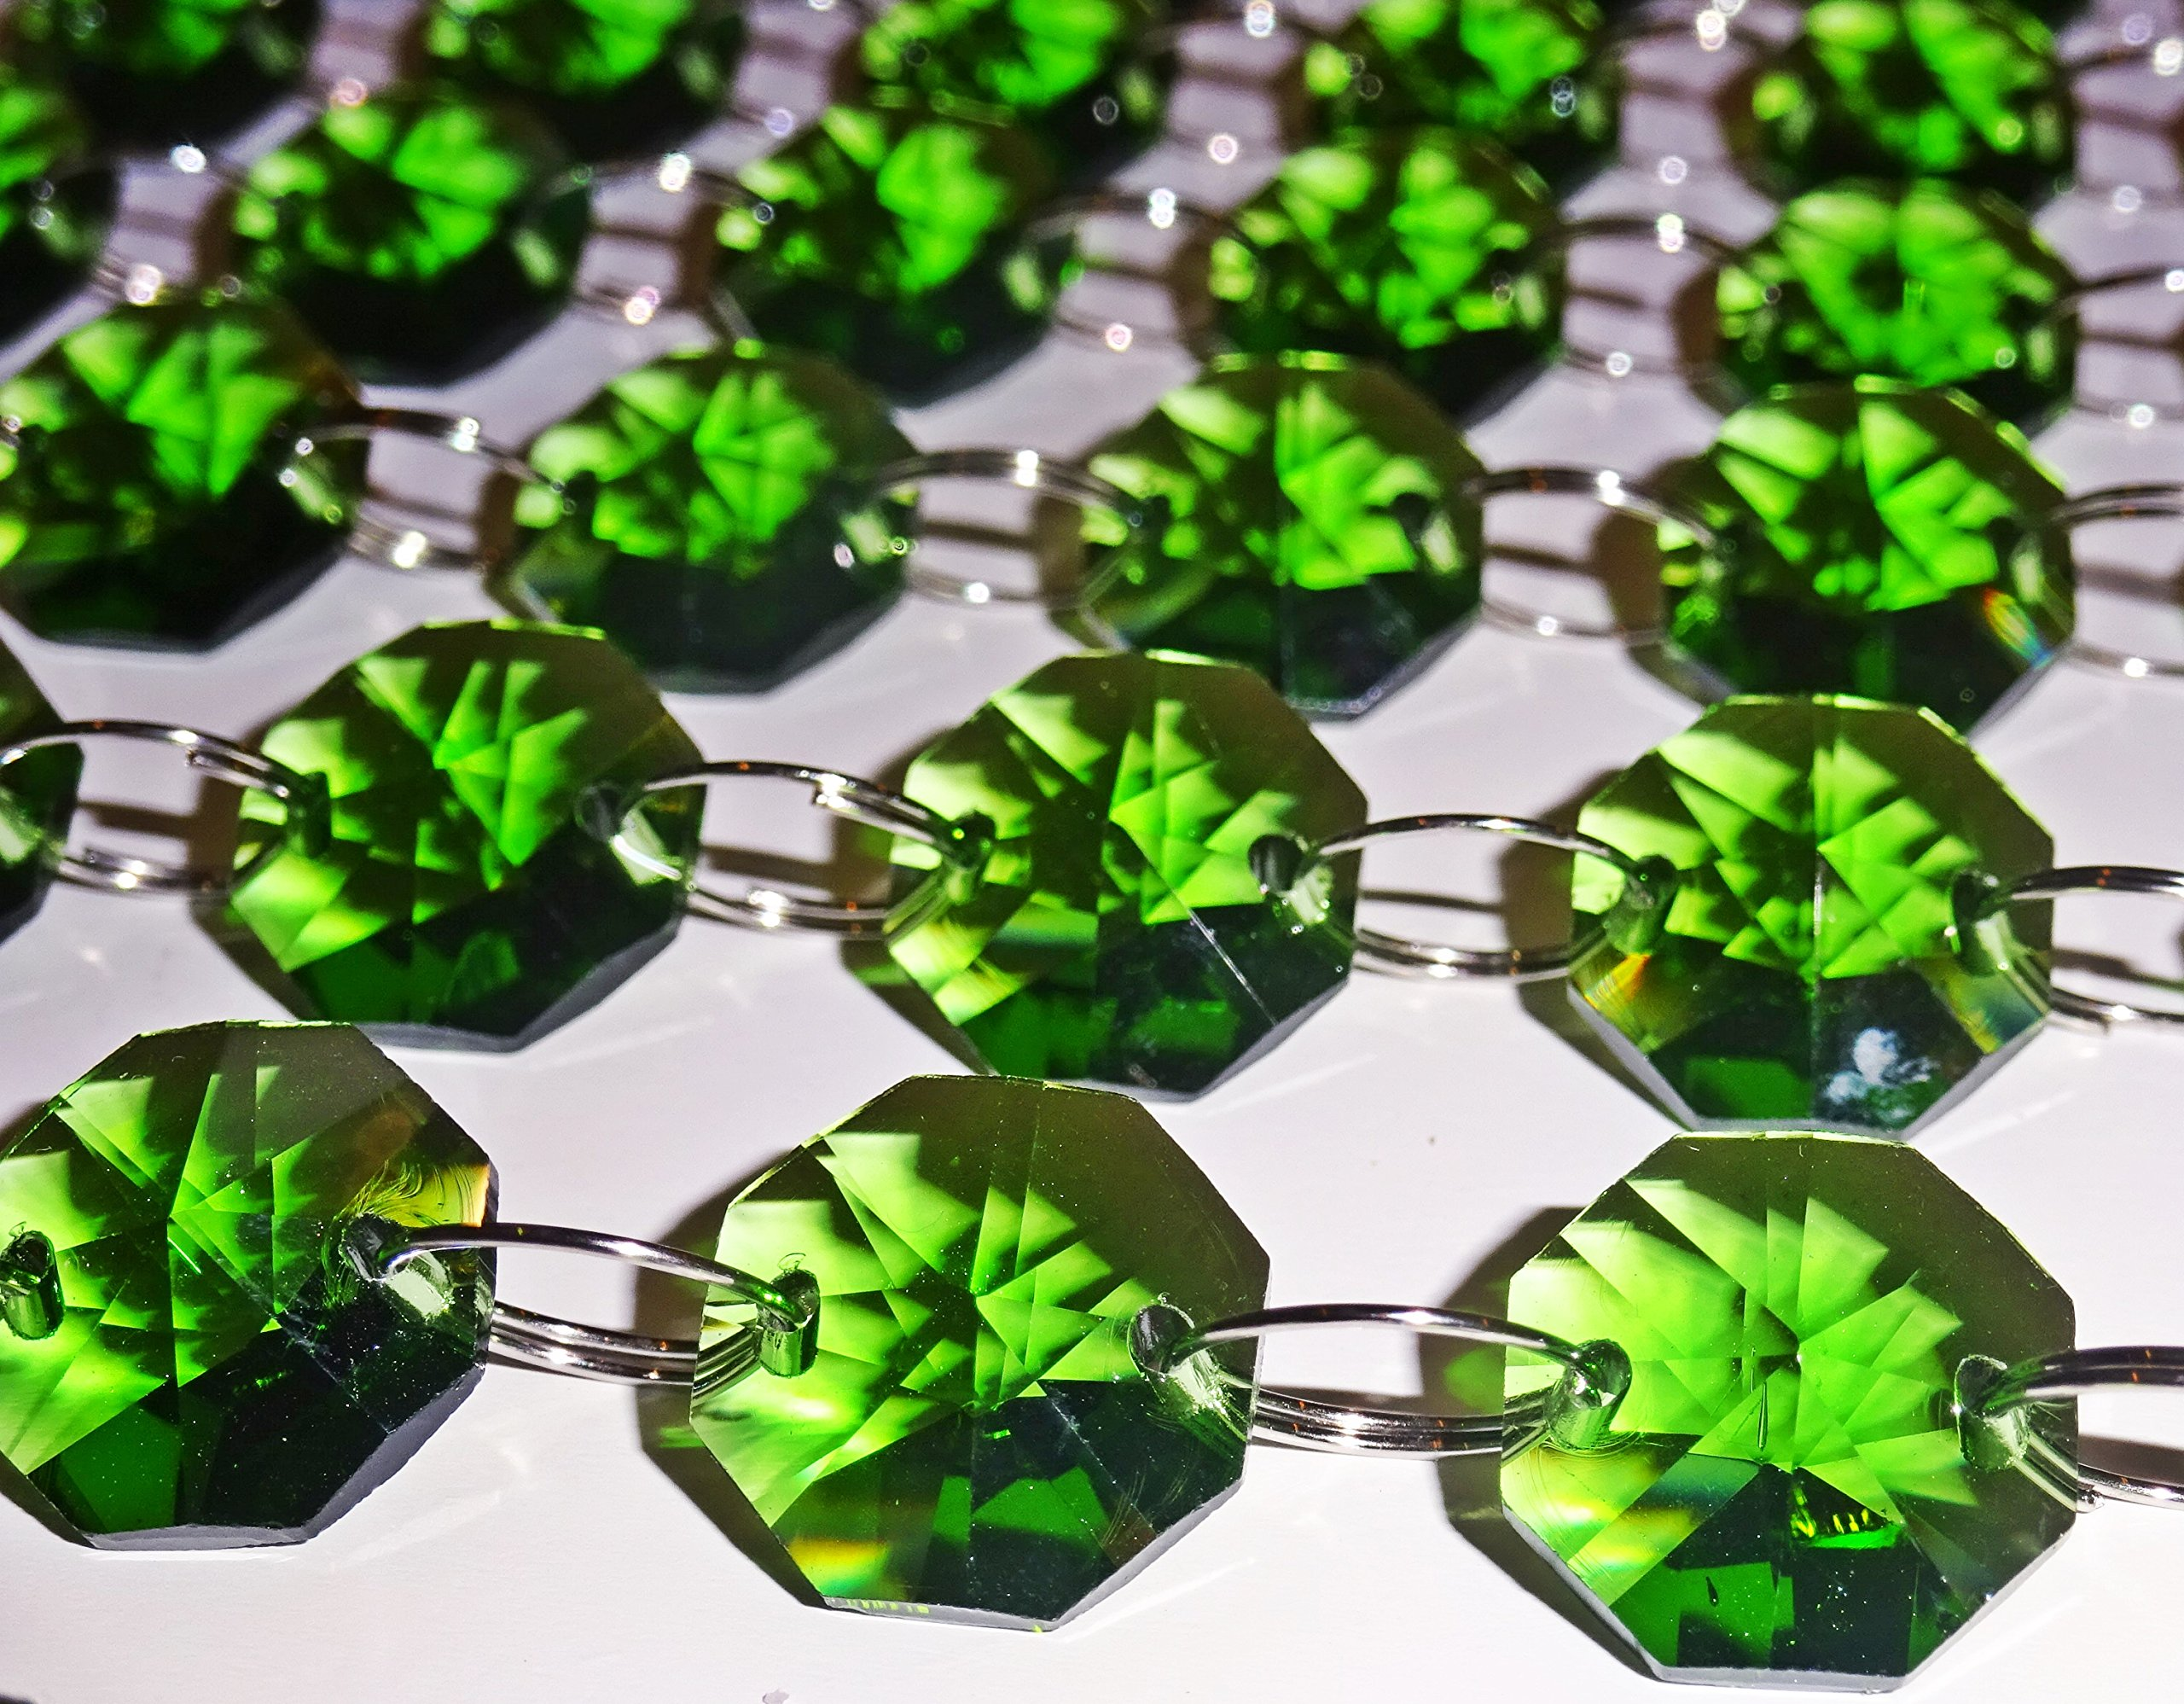 100 14mm Octagon Emerald Green Chandelier Drops Parts Cut Glass Crystals Droplets Beads Christmas Tree Ornaments Vintage Chic Wedding Decorations